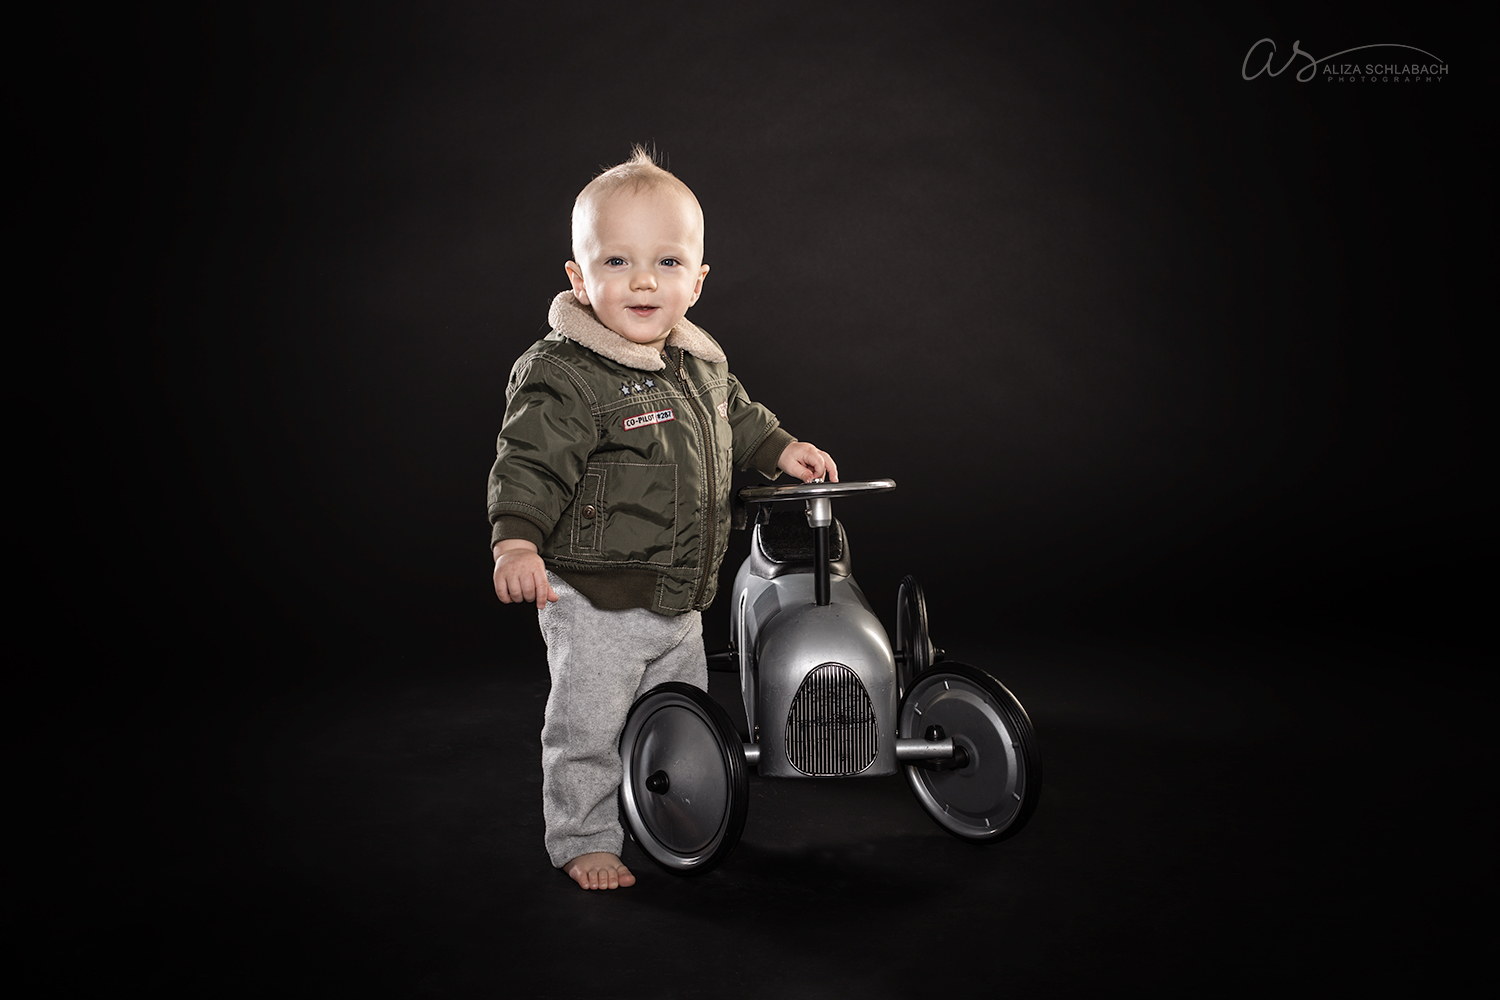 Portrait of a 1 year old baby in a bomber jacket next to a retro push car toy